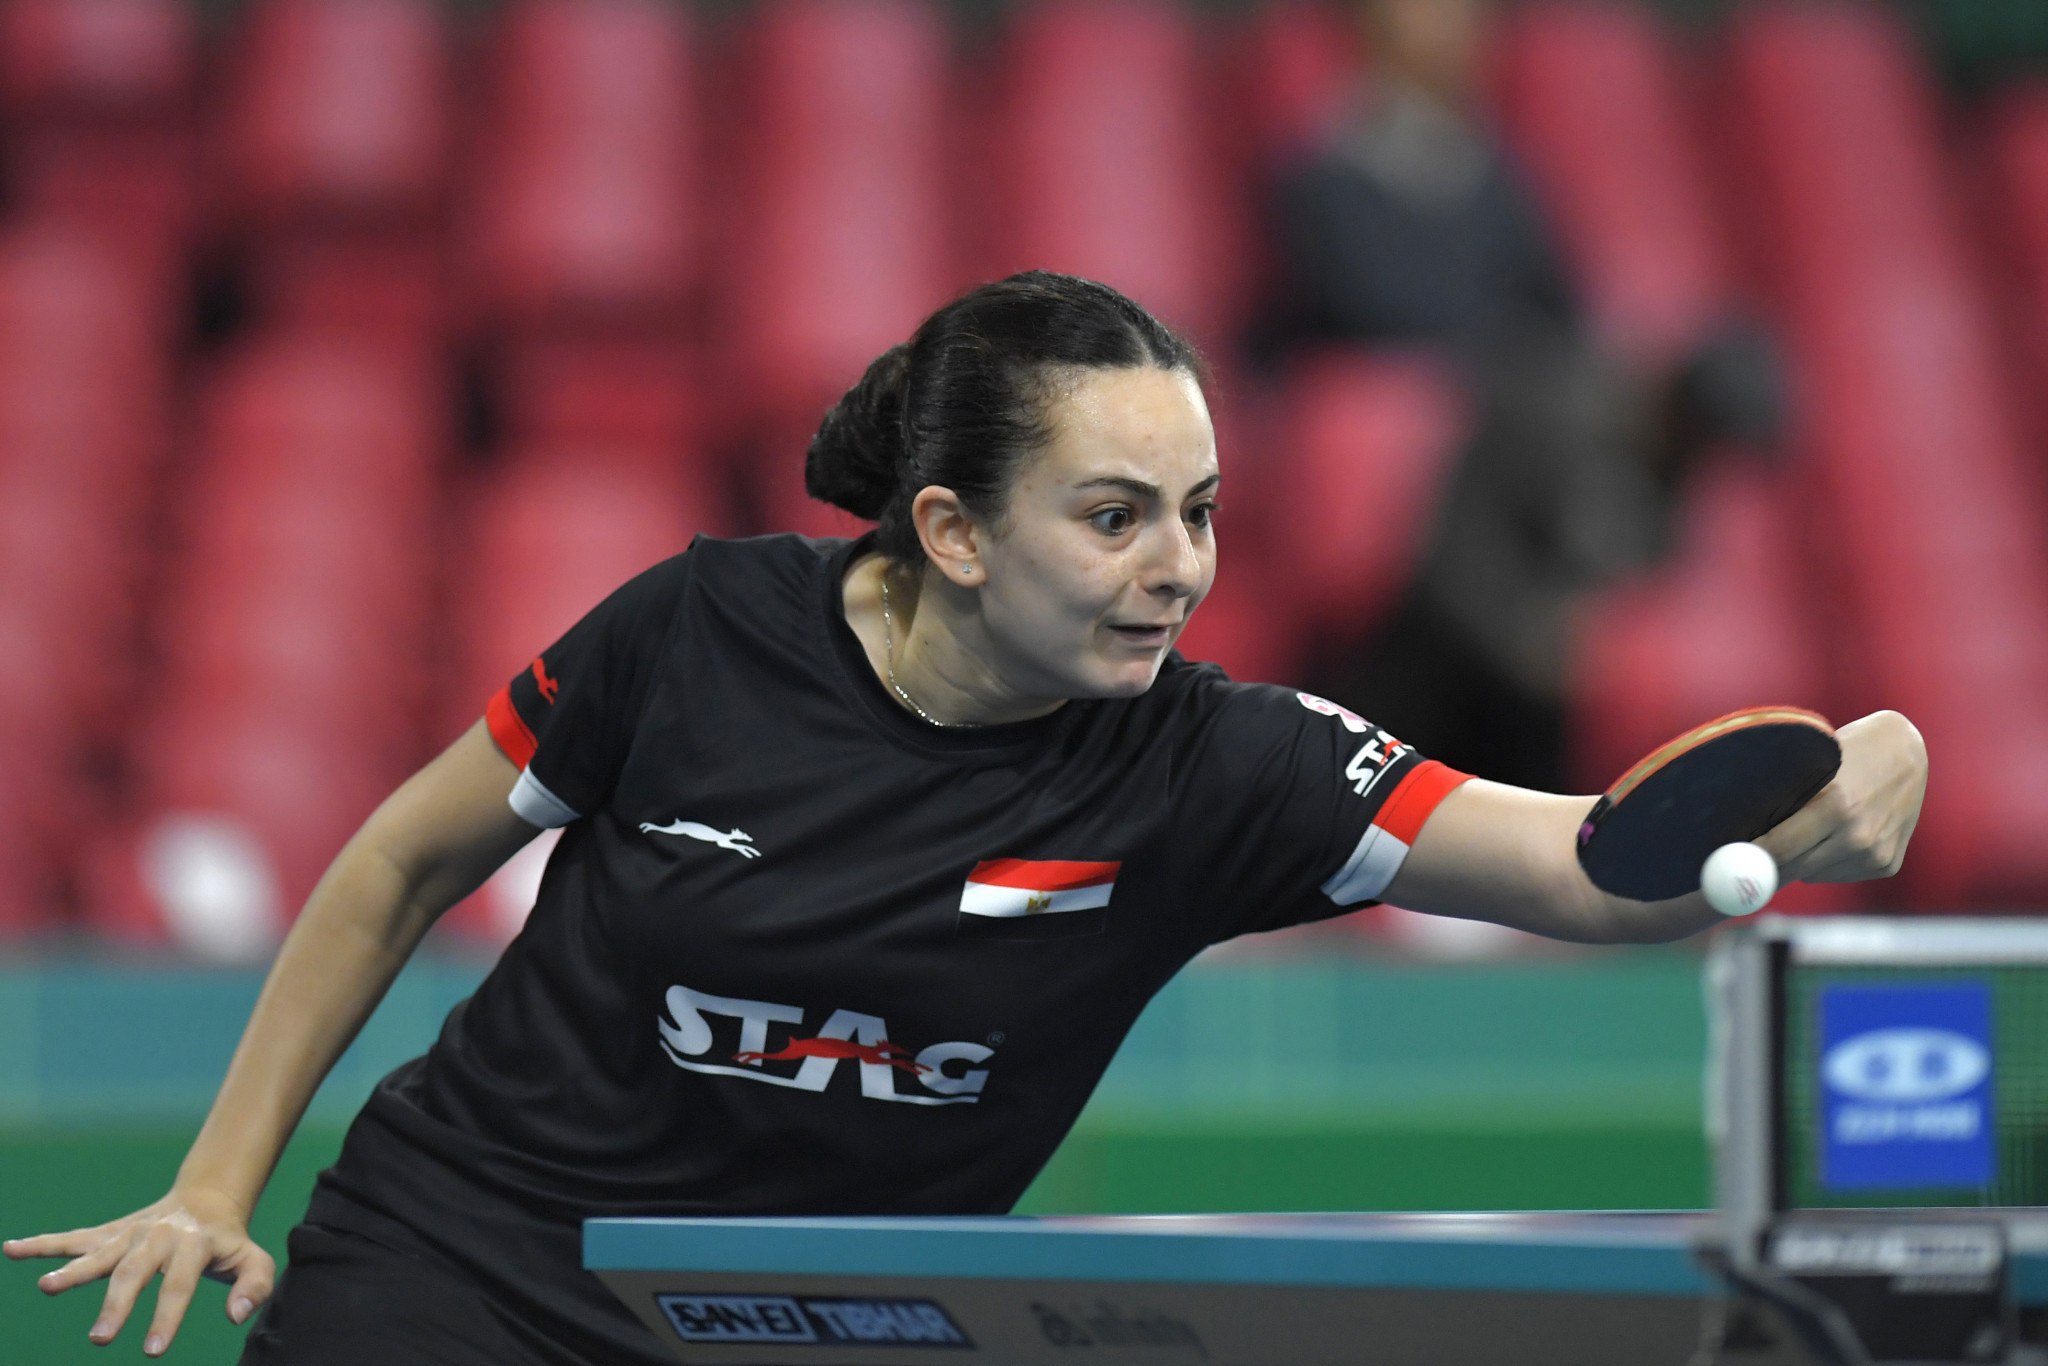 The African Table Tennis Championships will take place in 2021 ©Getty Images